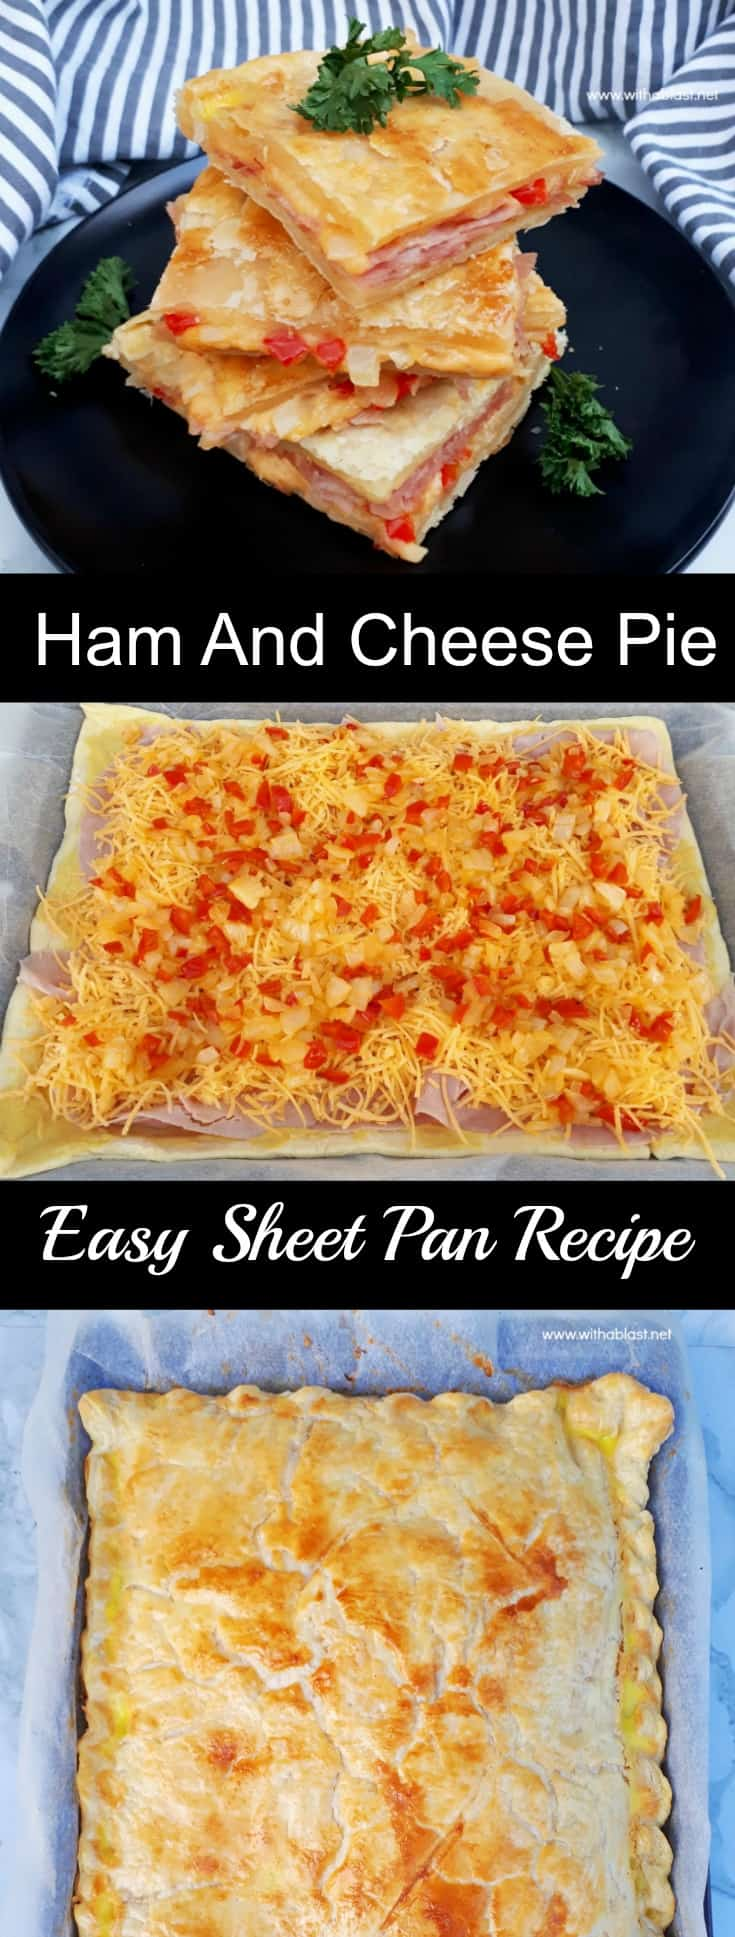 Ham and Cheese Pie is so quick and easy to make using a sheet pan and you can easily fit two pans into your oven - serve as a snack, breakfast or light dinner #SavoryPies #HamAndCheesePie #SheetPanRecipes #QuickAndEasyRecipes #SheetPanPie #SavoryPies